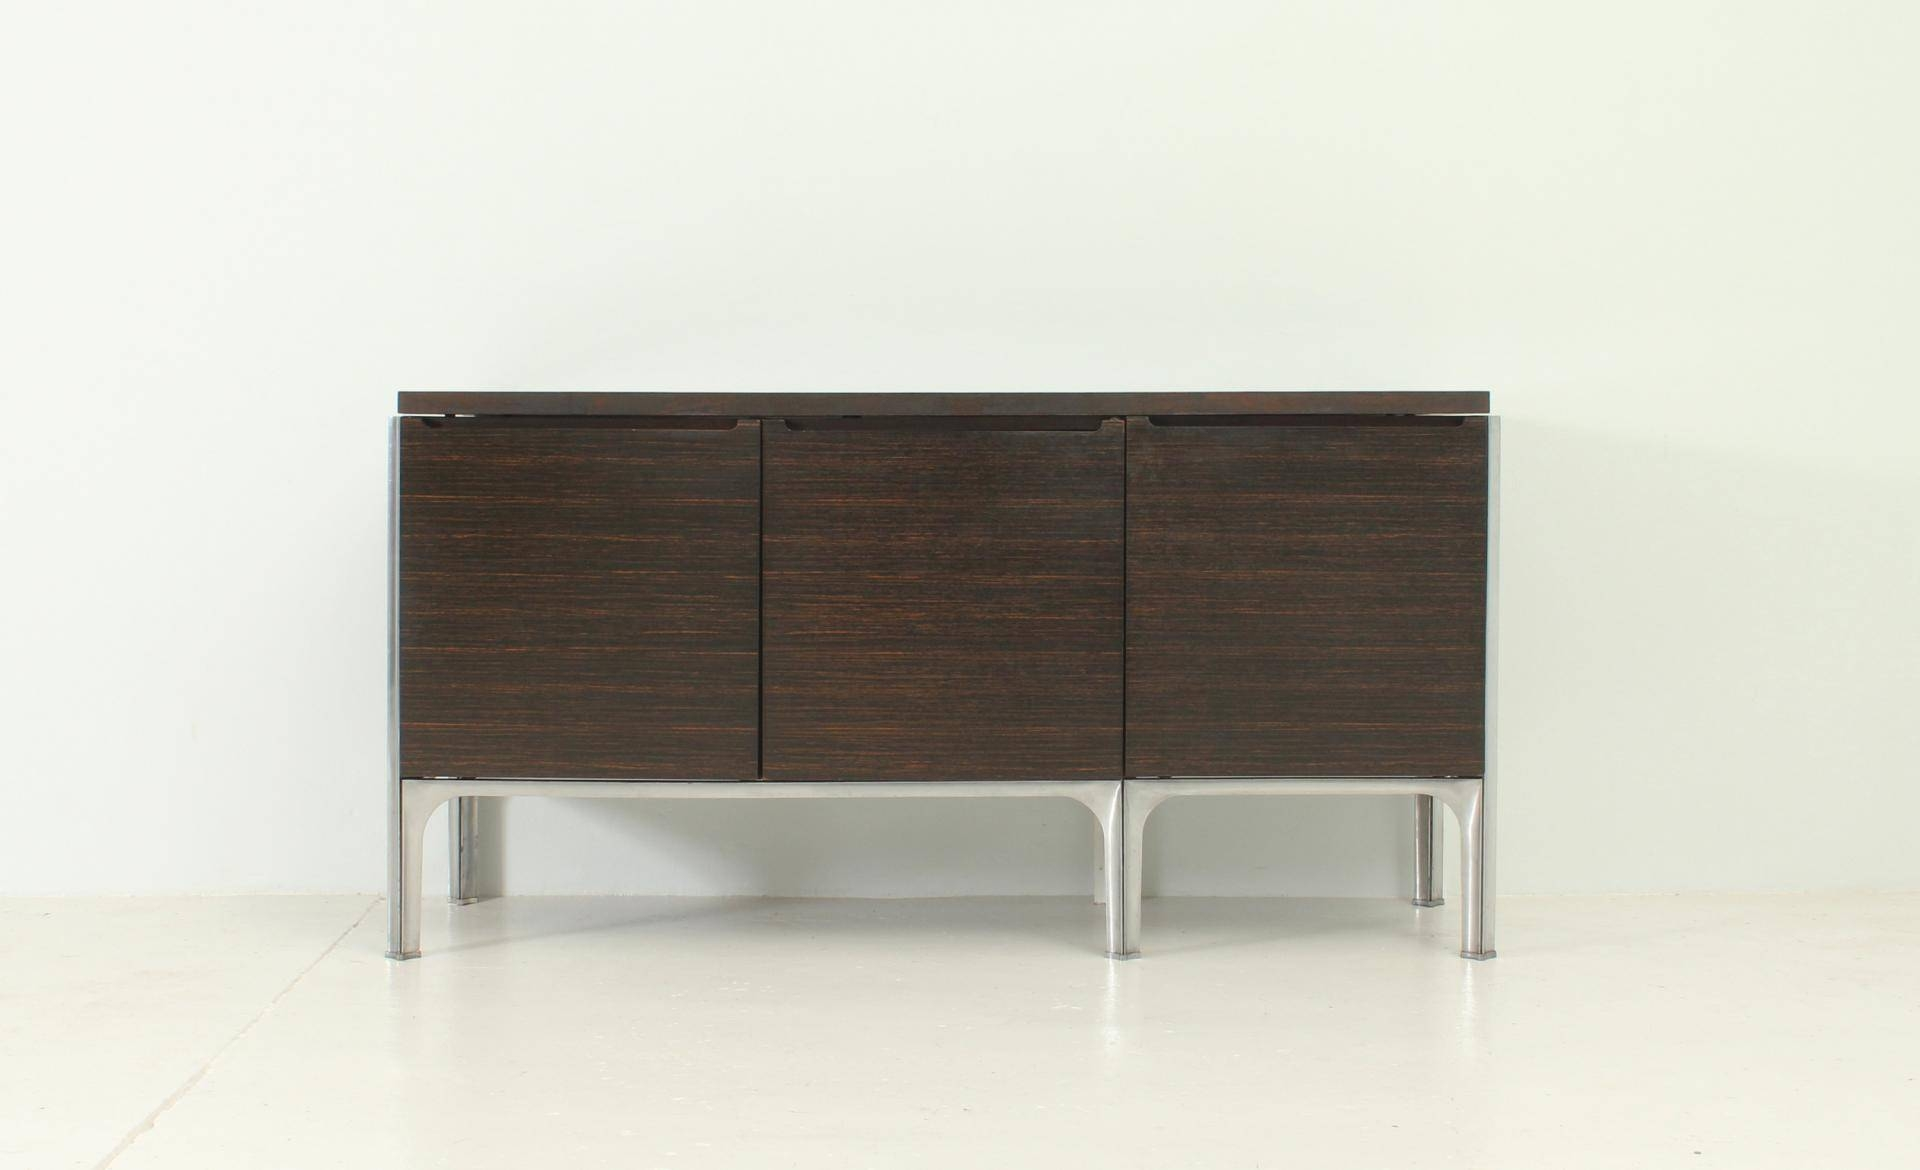 Macassar Ebony Wood Sideboardraymond Loewy For Df 2000 For intended for Affinity Sideboards (Image 7 of 15)